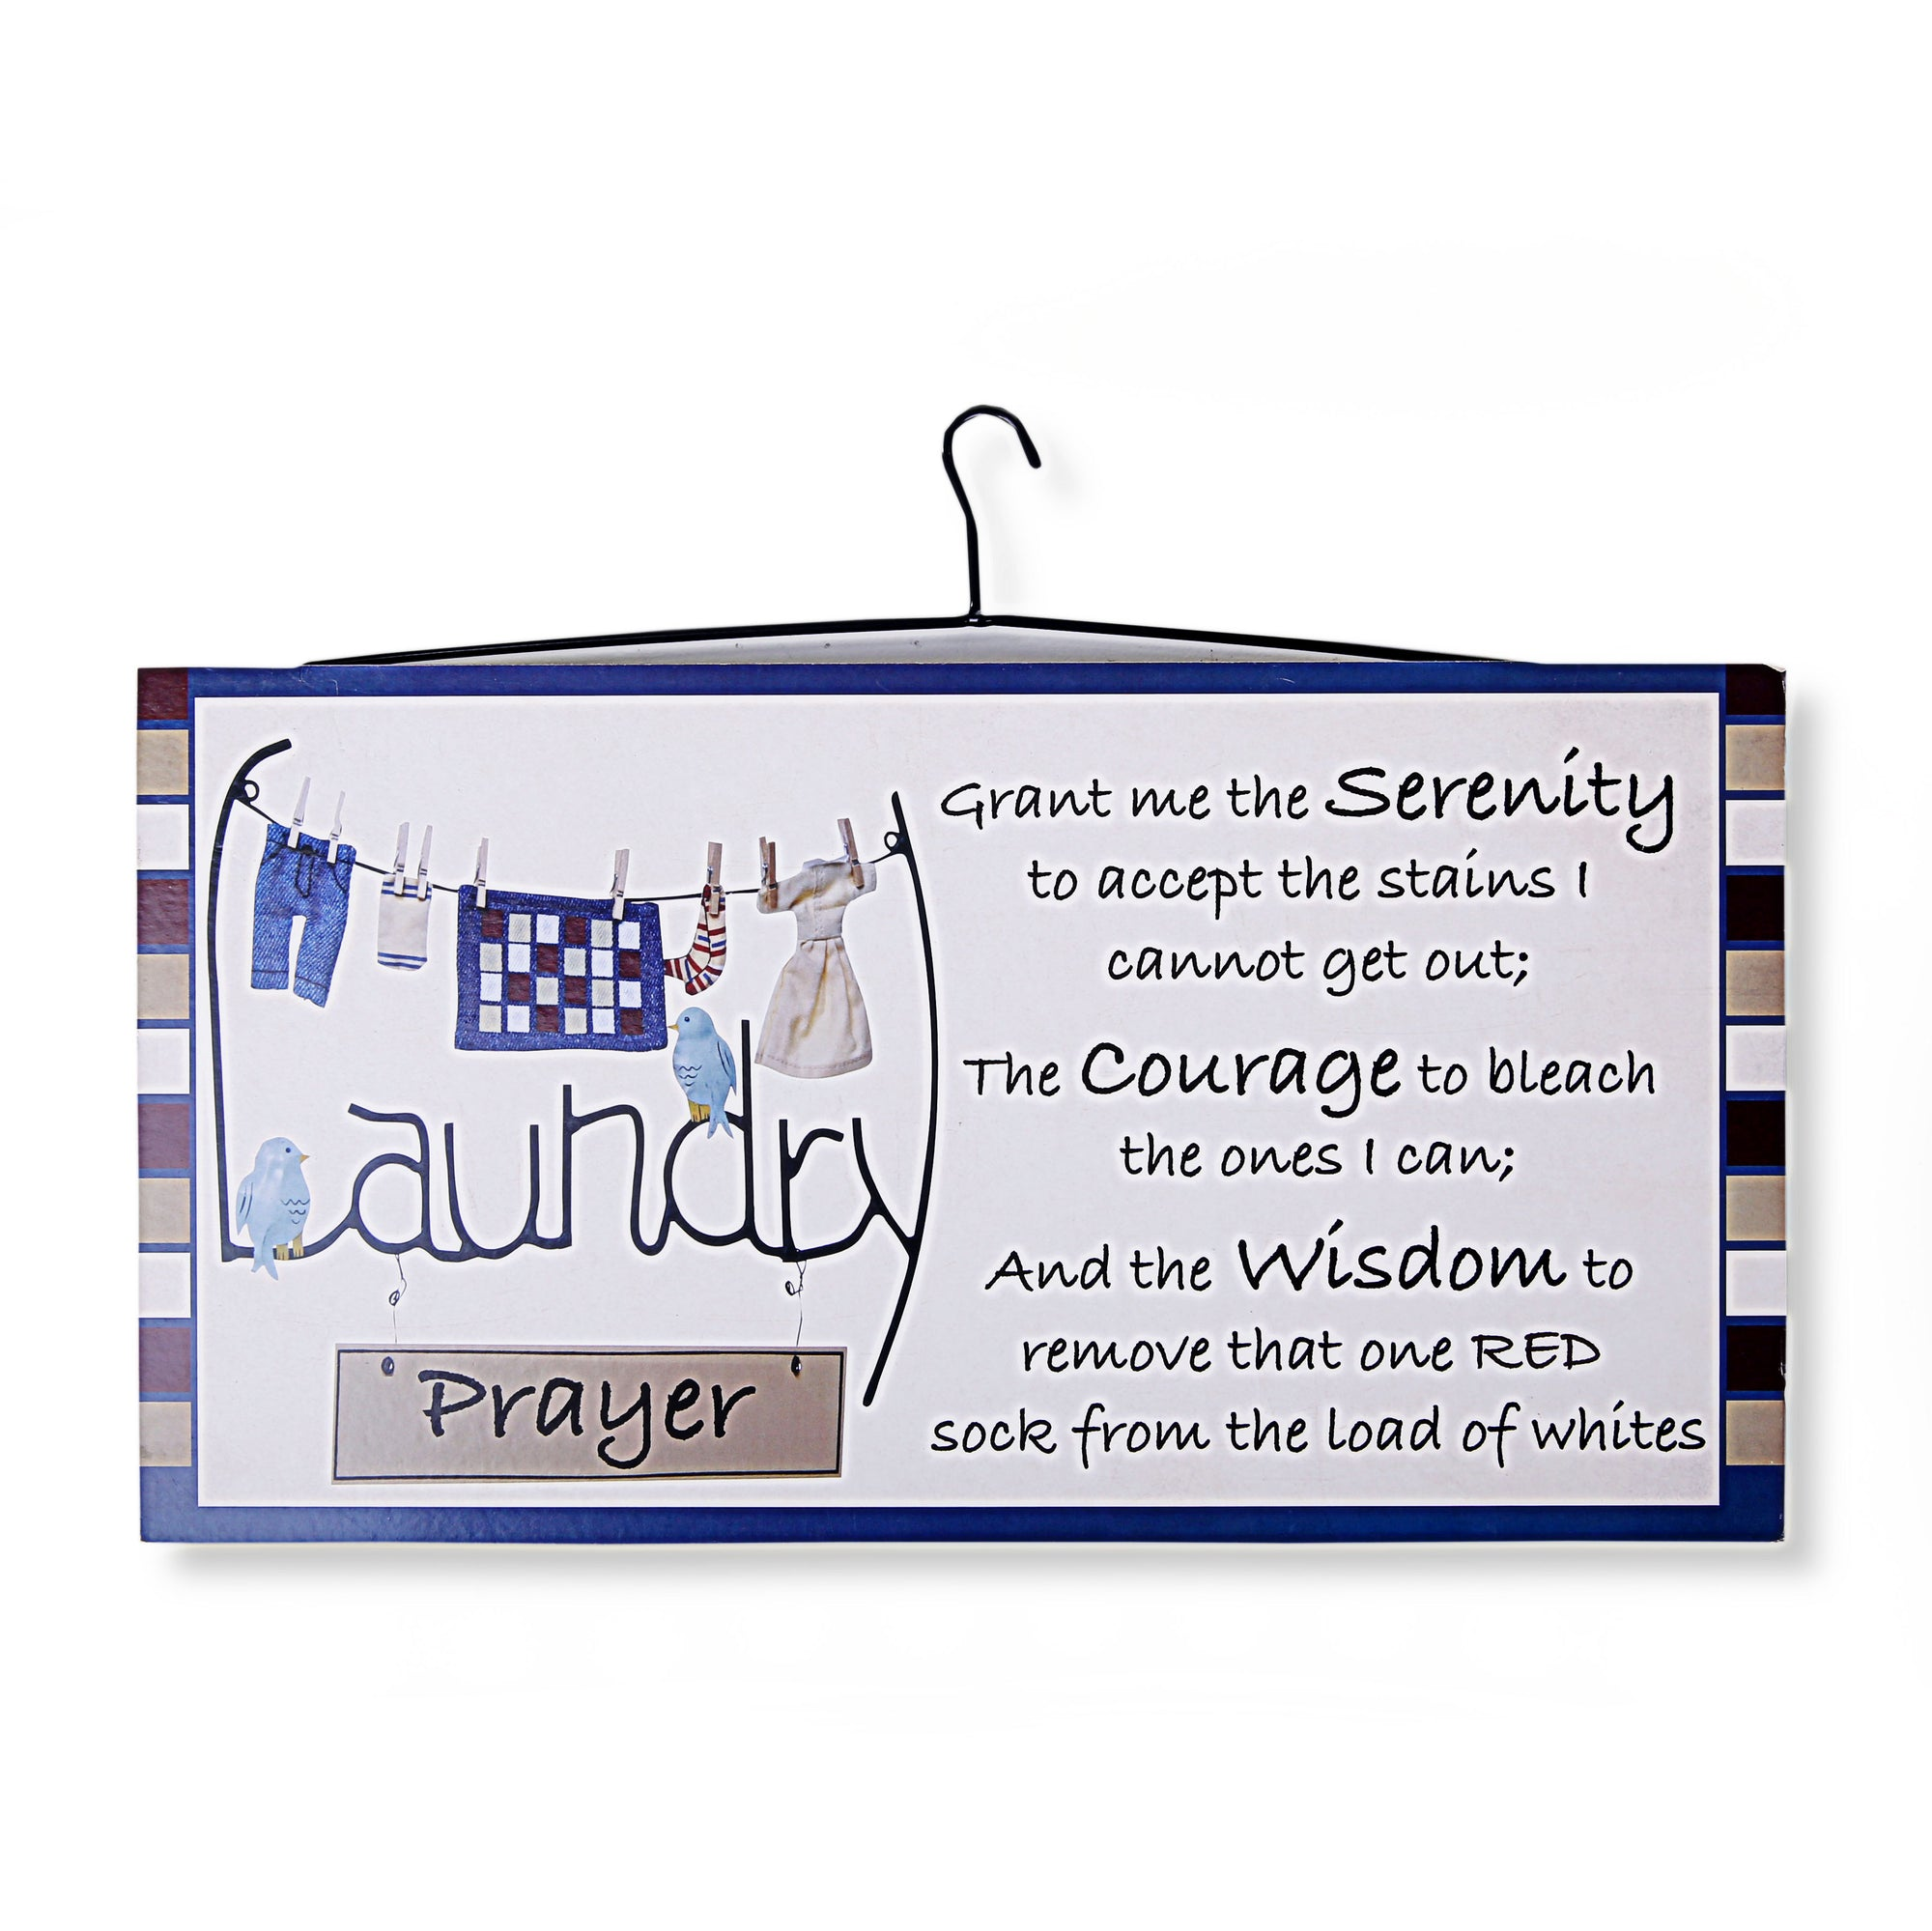 Laundery Prayer Wall Quotations